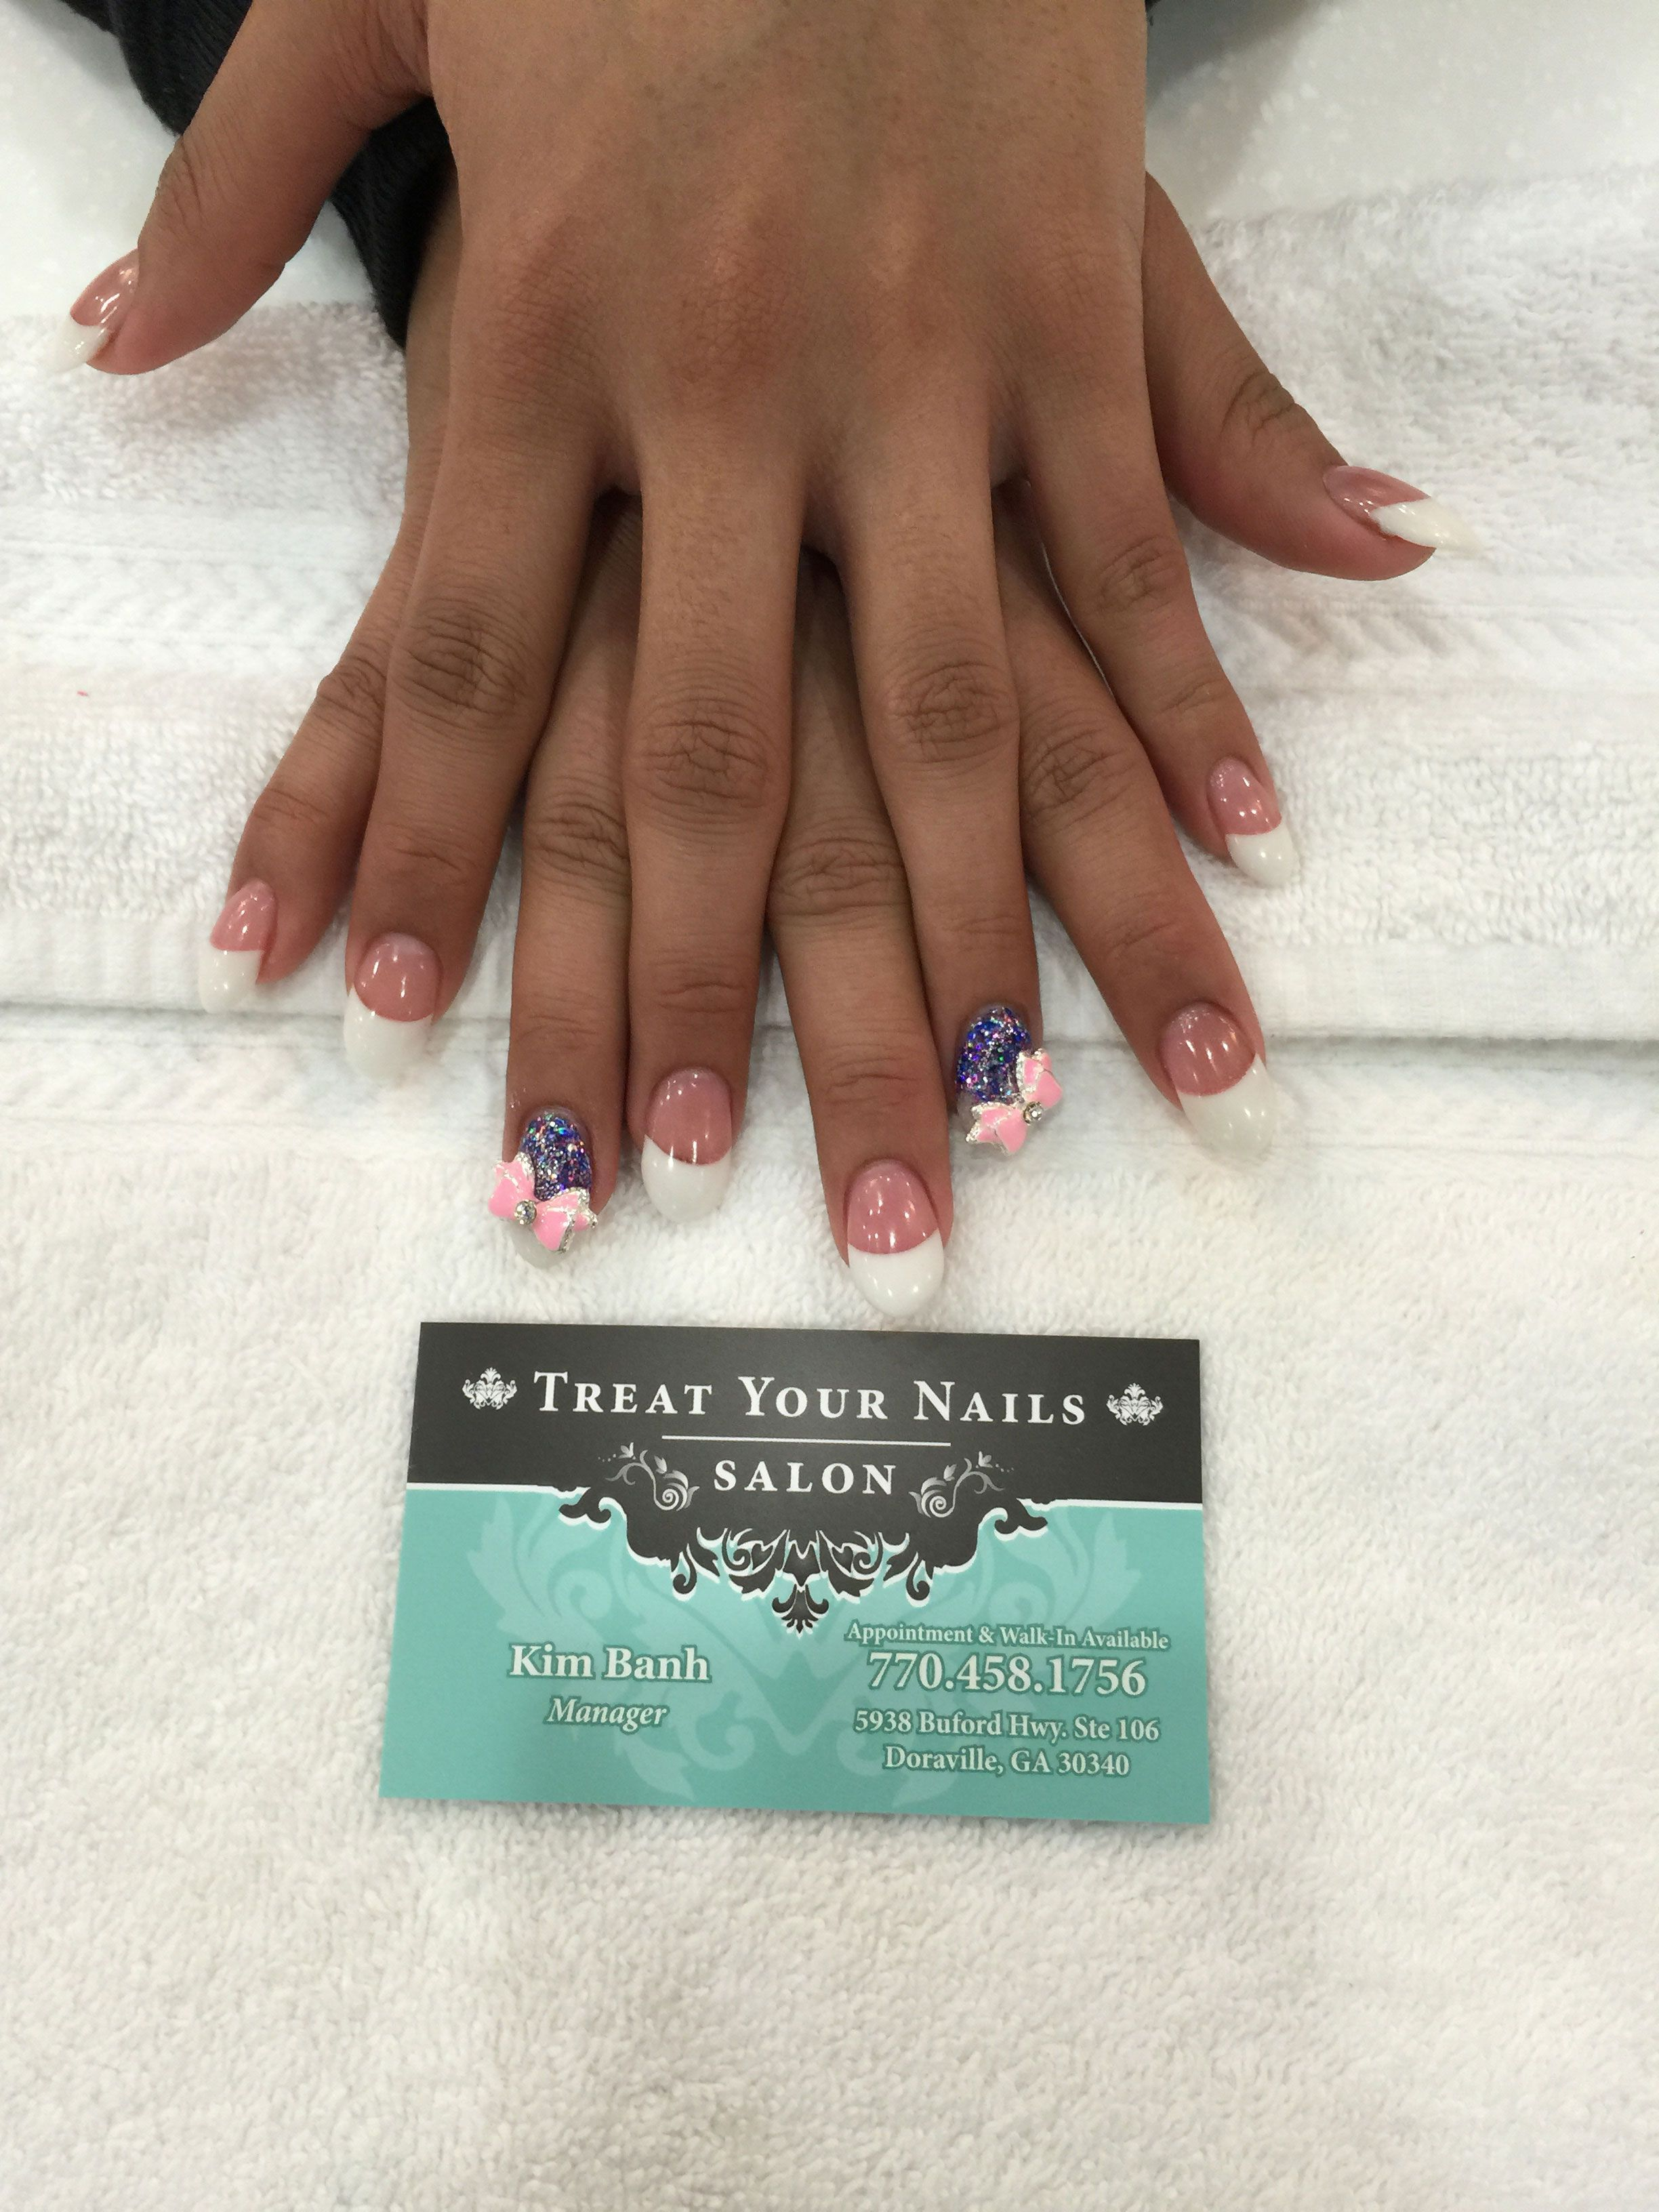 Solar nails start at $40 For a full set, $25 for a fill in. For more ...